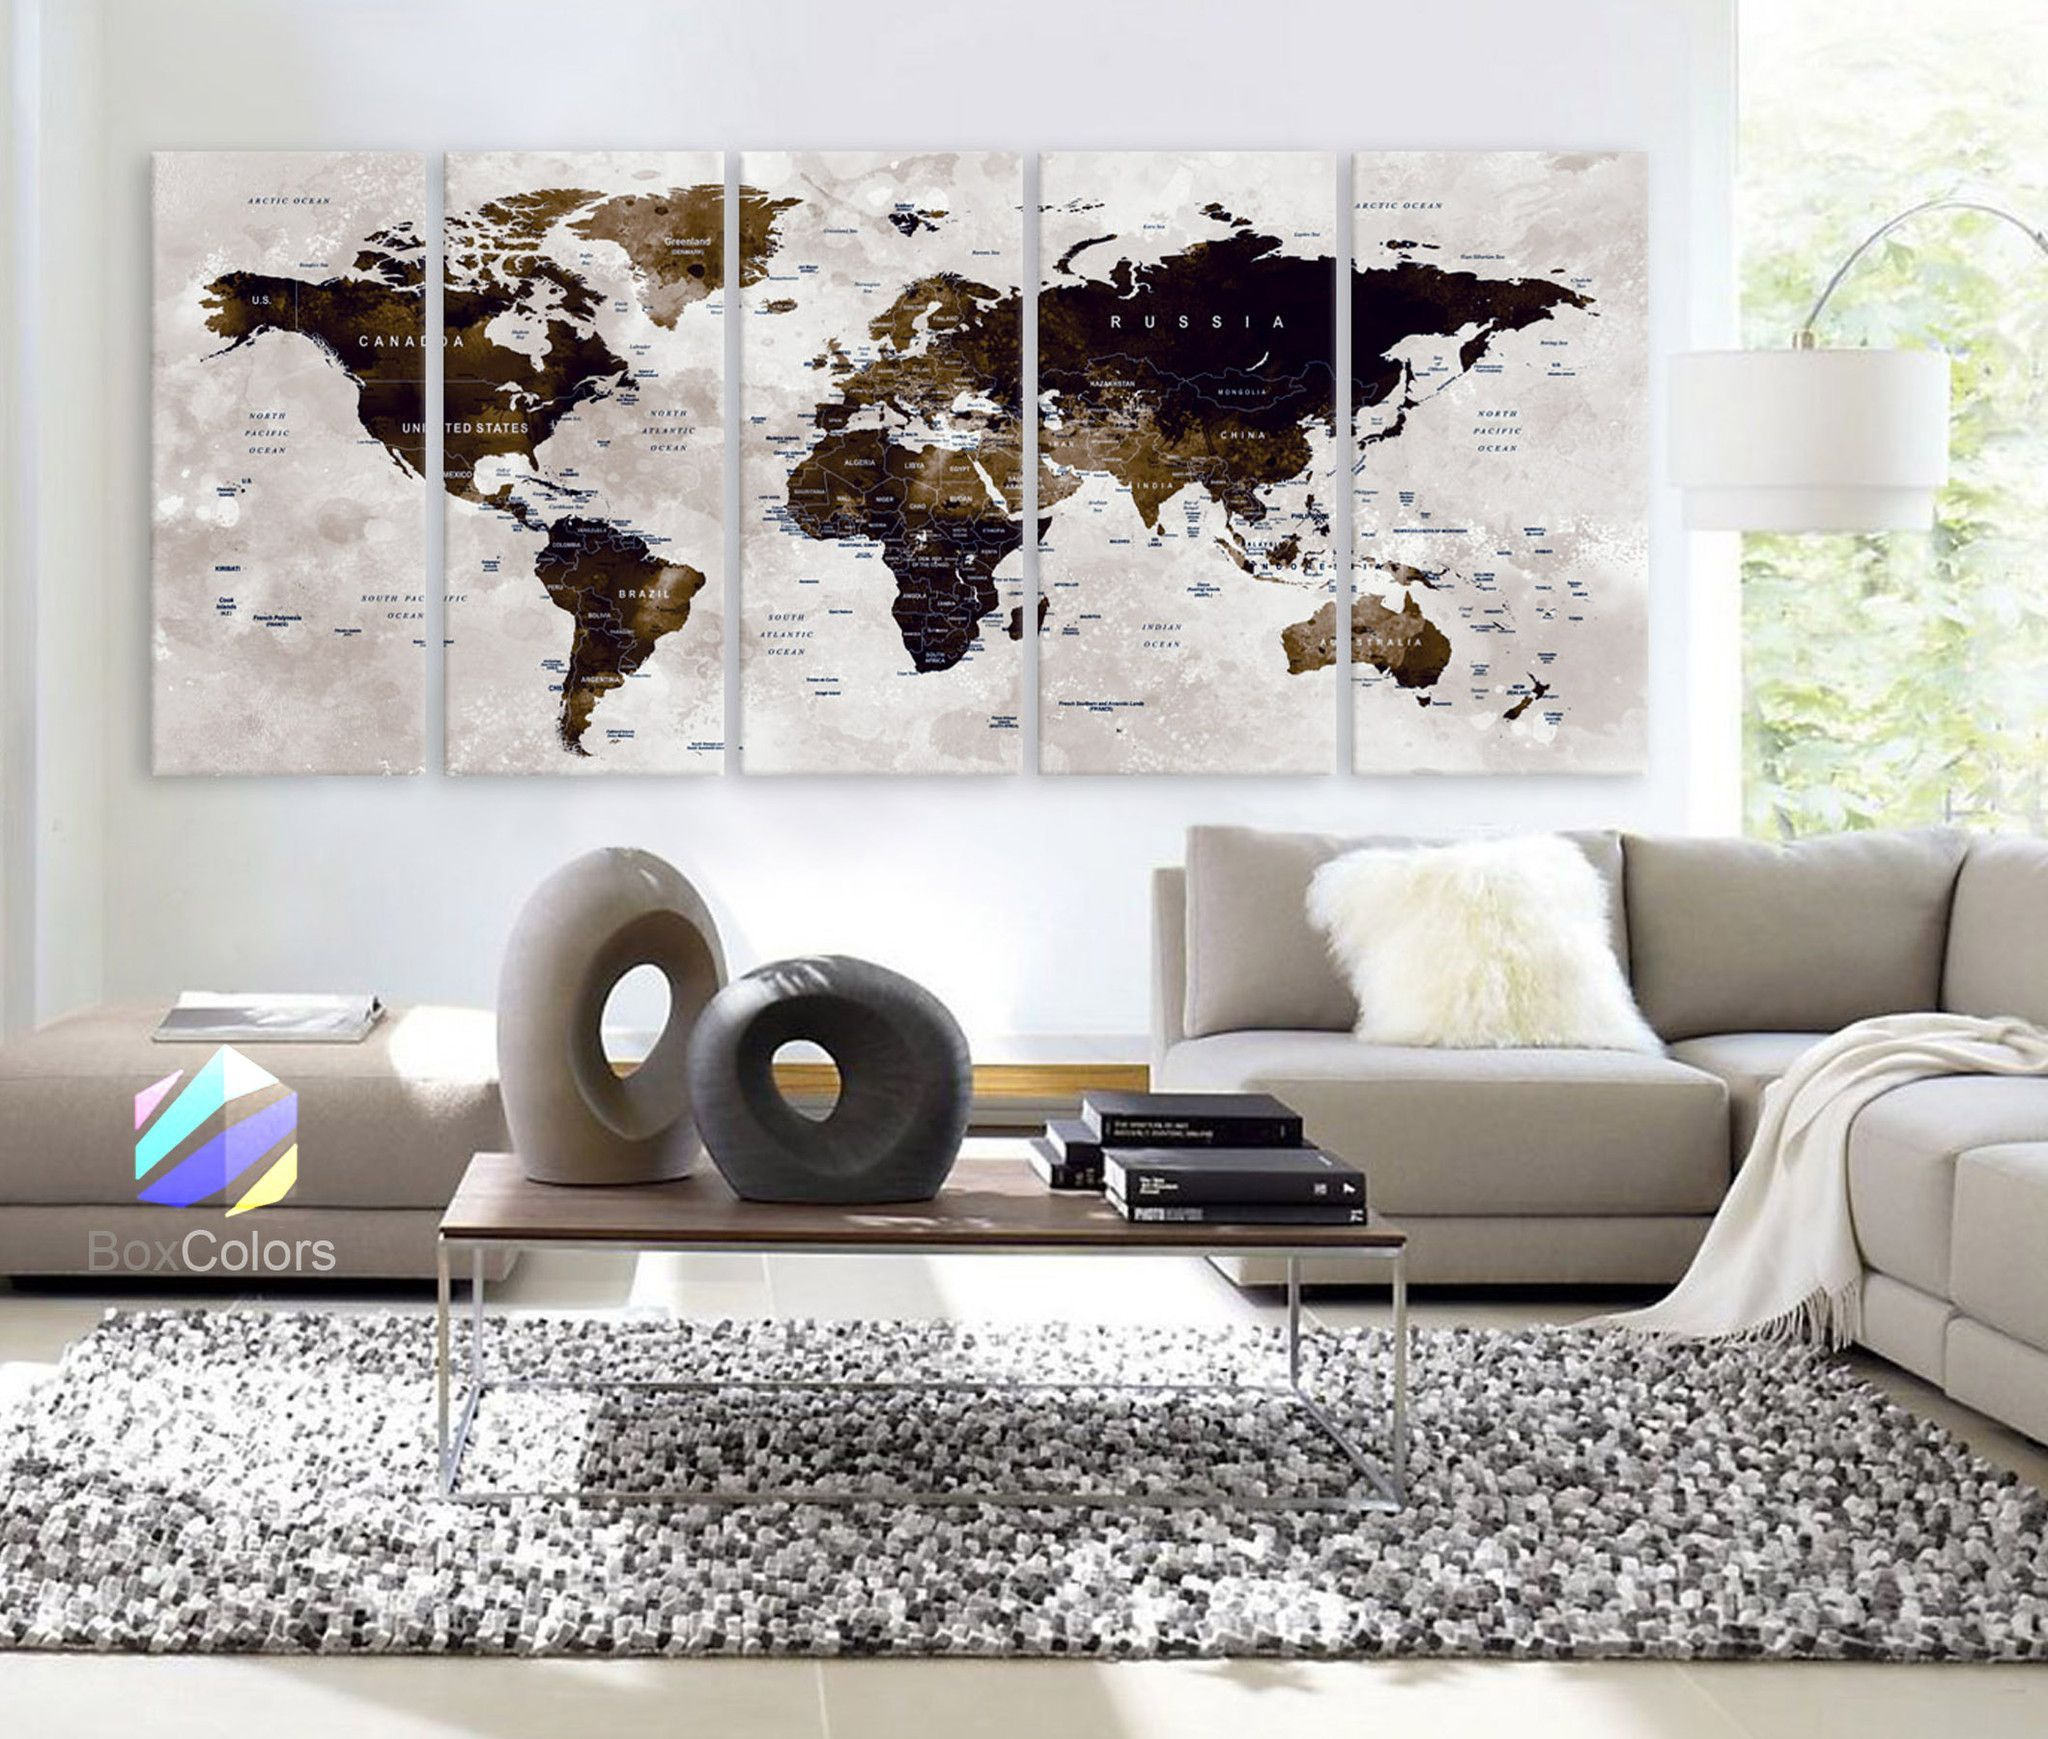 Xlarge 30 x 70 5 panels art canvas print watercolor map world push xlarge 30 x 70 5 panels art canvas print watercolor map world push pin gumiabroncs Choice Image